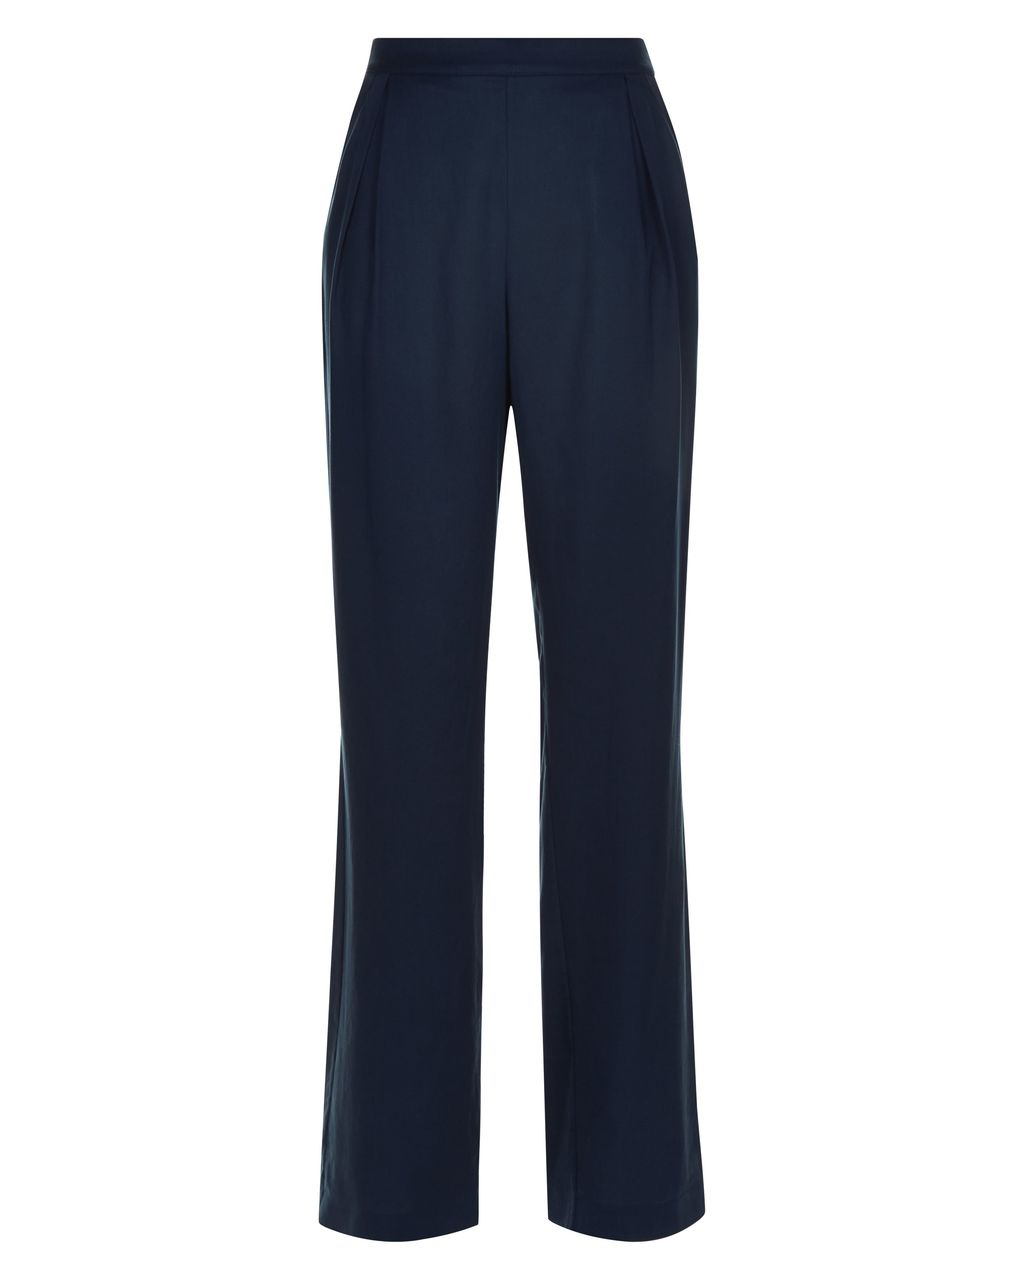 City Palazzo Trousers, Navy - length: standard; pattern: plain; waist: high rise; predominant colour: navy; fibres: polyester/polyamide - 100%; fit: straight leg; pattern type: fabric; texture group: other - light to midweight; style: standard; occasions: creative work; season: s/s 2016